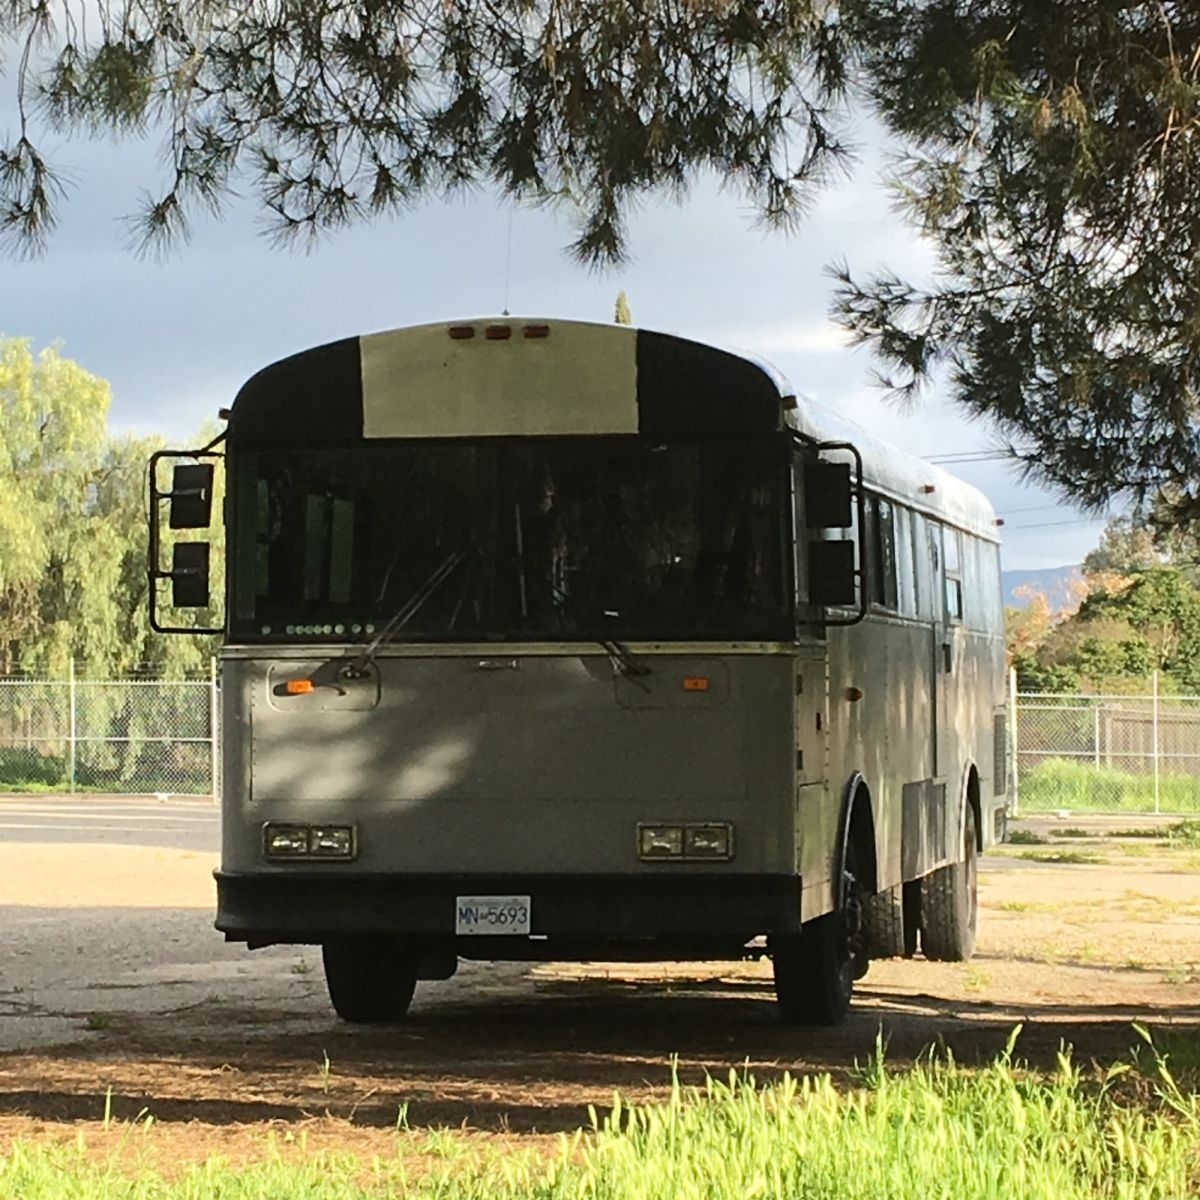 Lucky Clover the Converted School Bus is FOR SALE! - Converted Bus for Sale  in Valley Center, California - Tiny House Listings